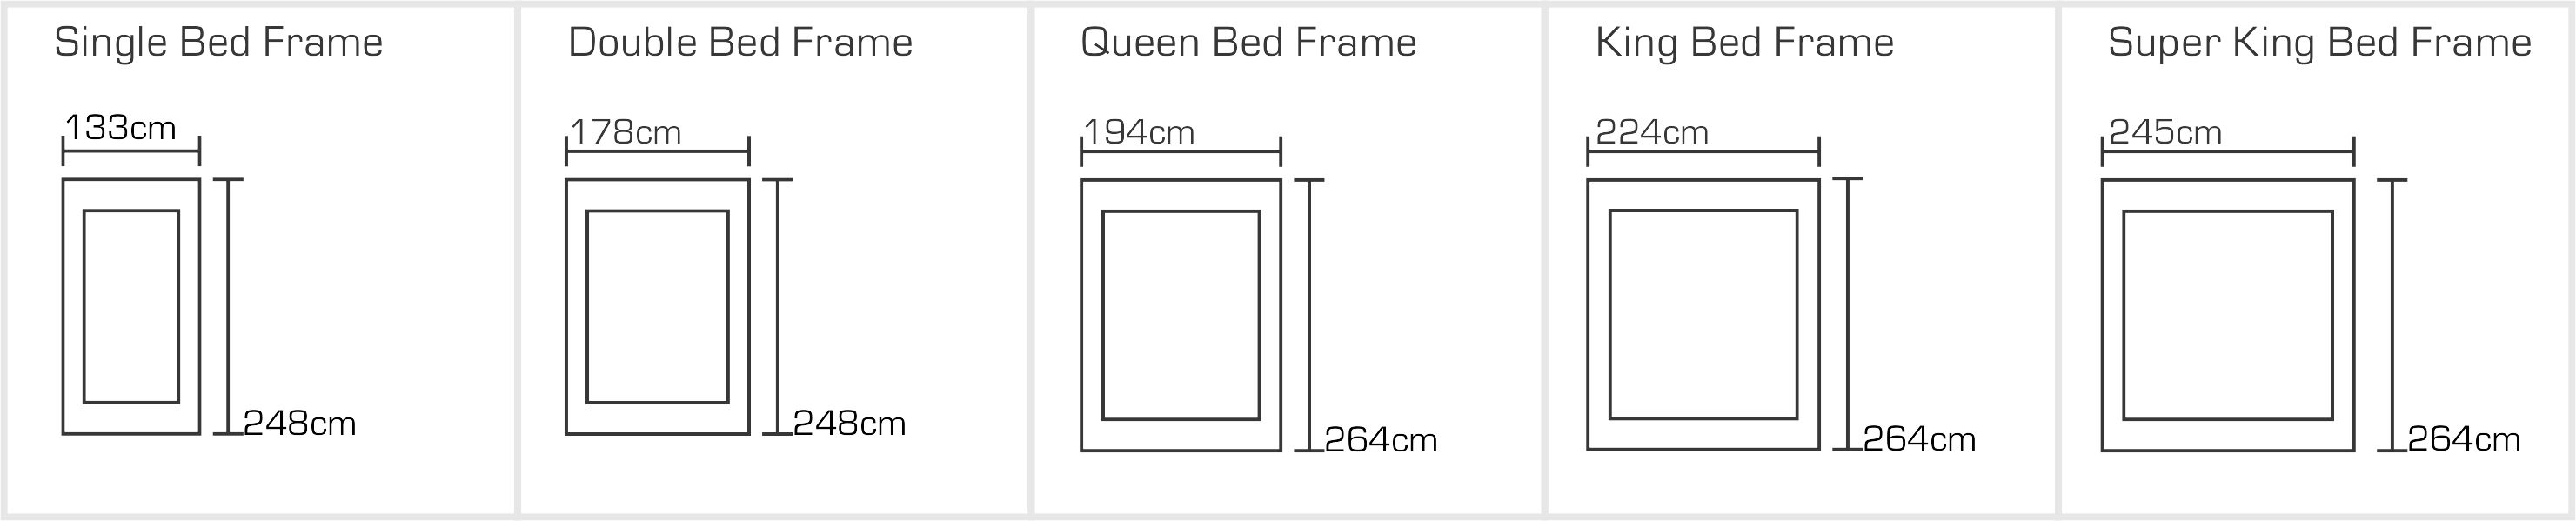 Barcelona Bed Sizes